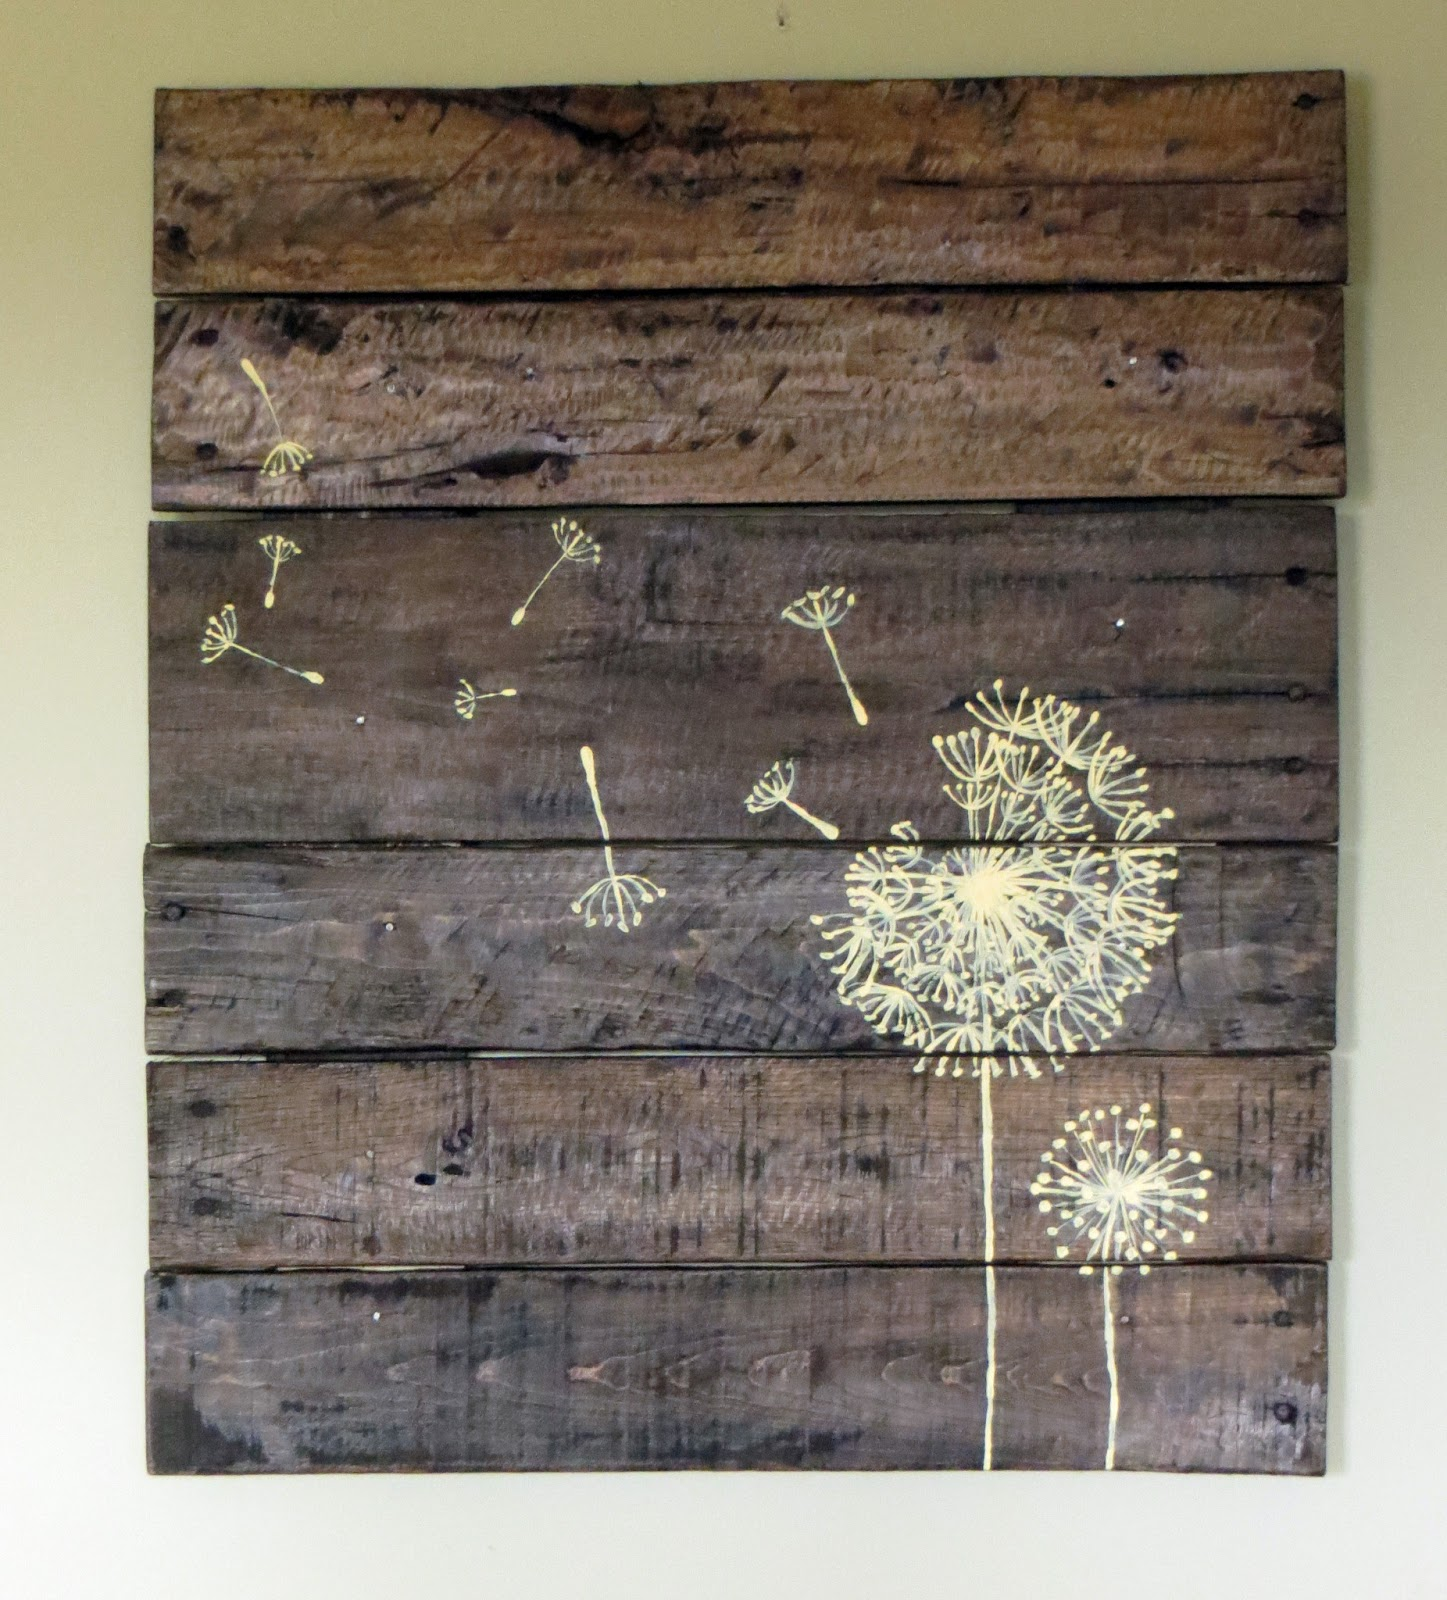 Uncategorized Wood Pallet Artwork namely original pallet wood sign ideas i saw a dandelion vinyl decal somewhere on google images and turned it into an idea for did the drawing first in sharpie then painted